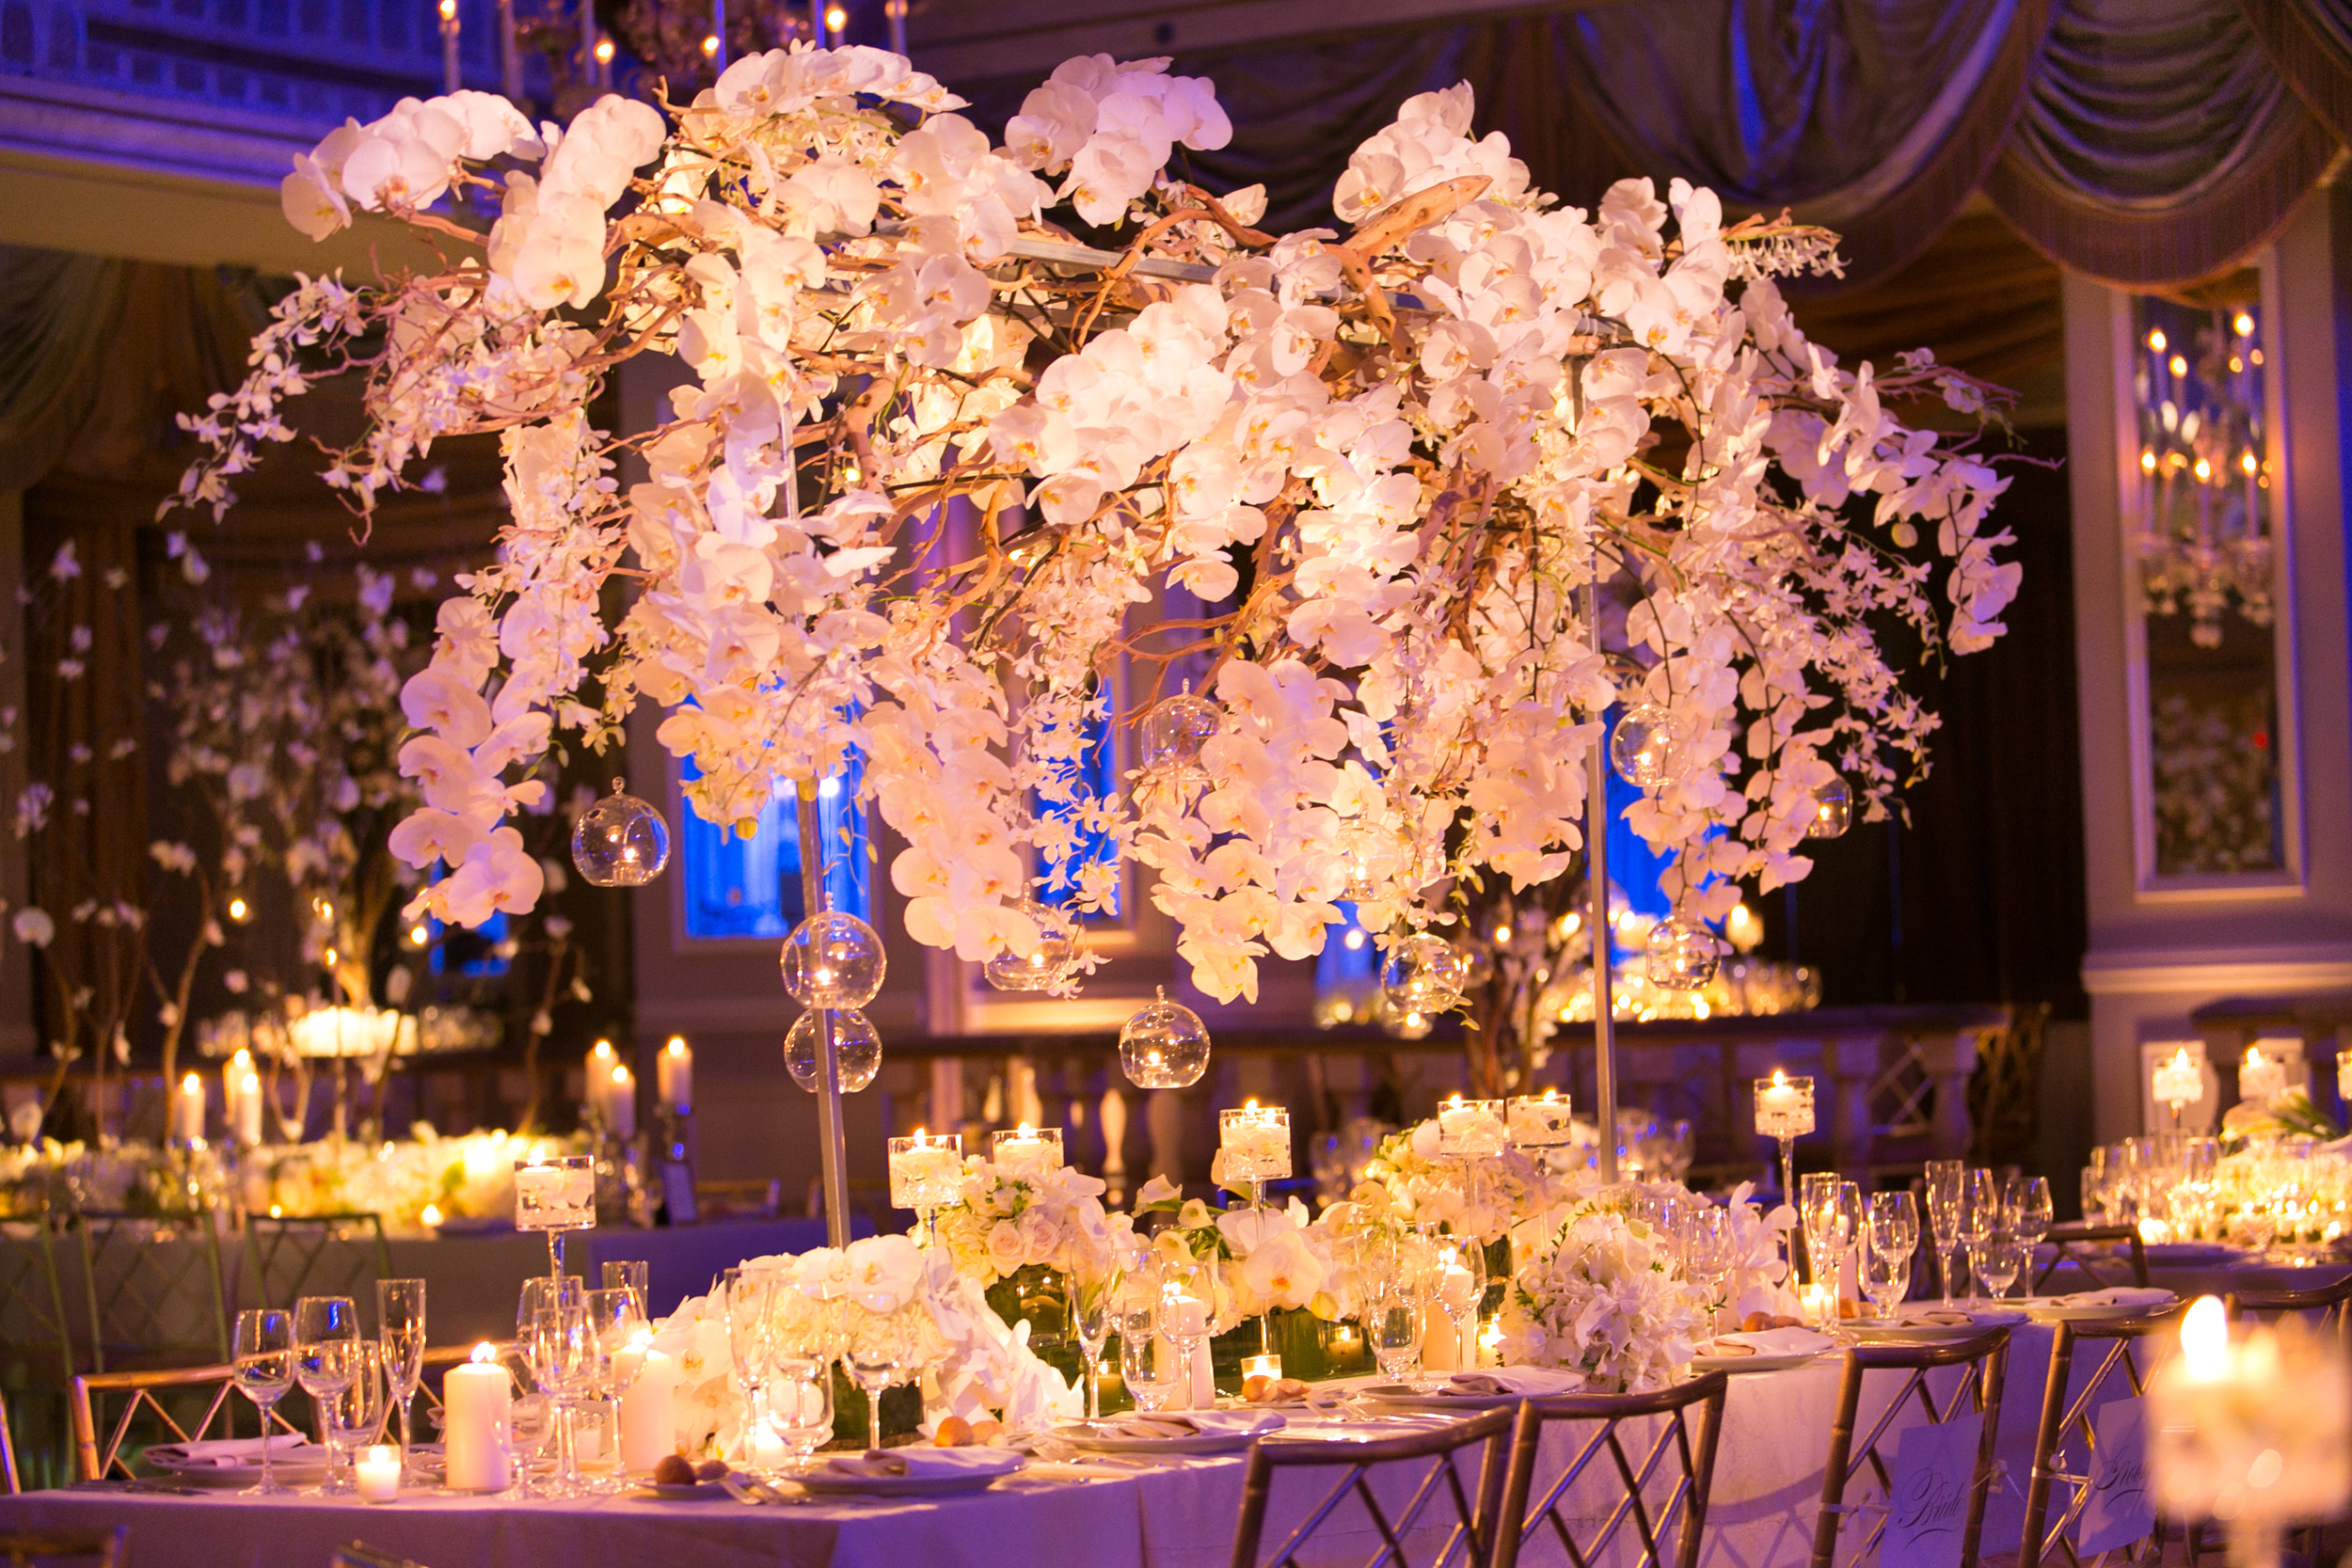 NYC-Wedding-Planner-Andrea-Freeman-Events-The-Pierre-16.jpg